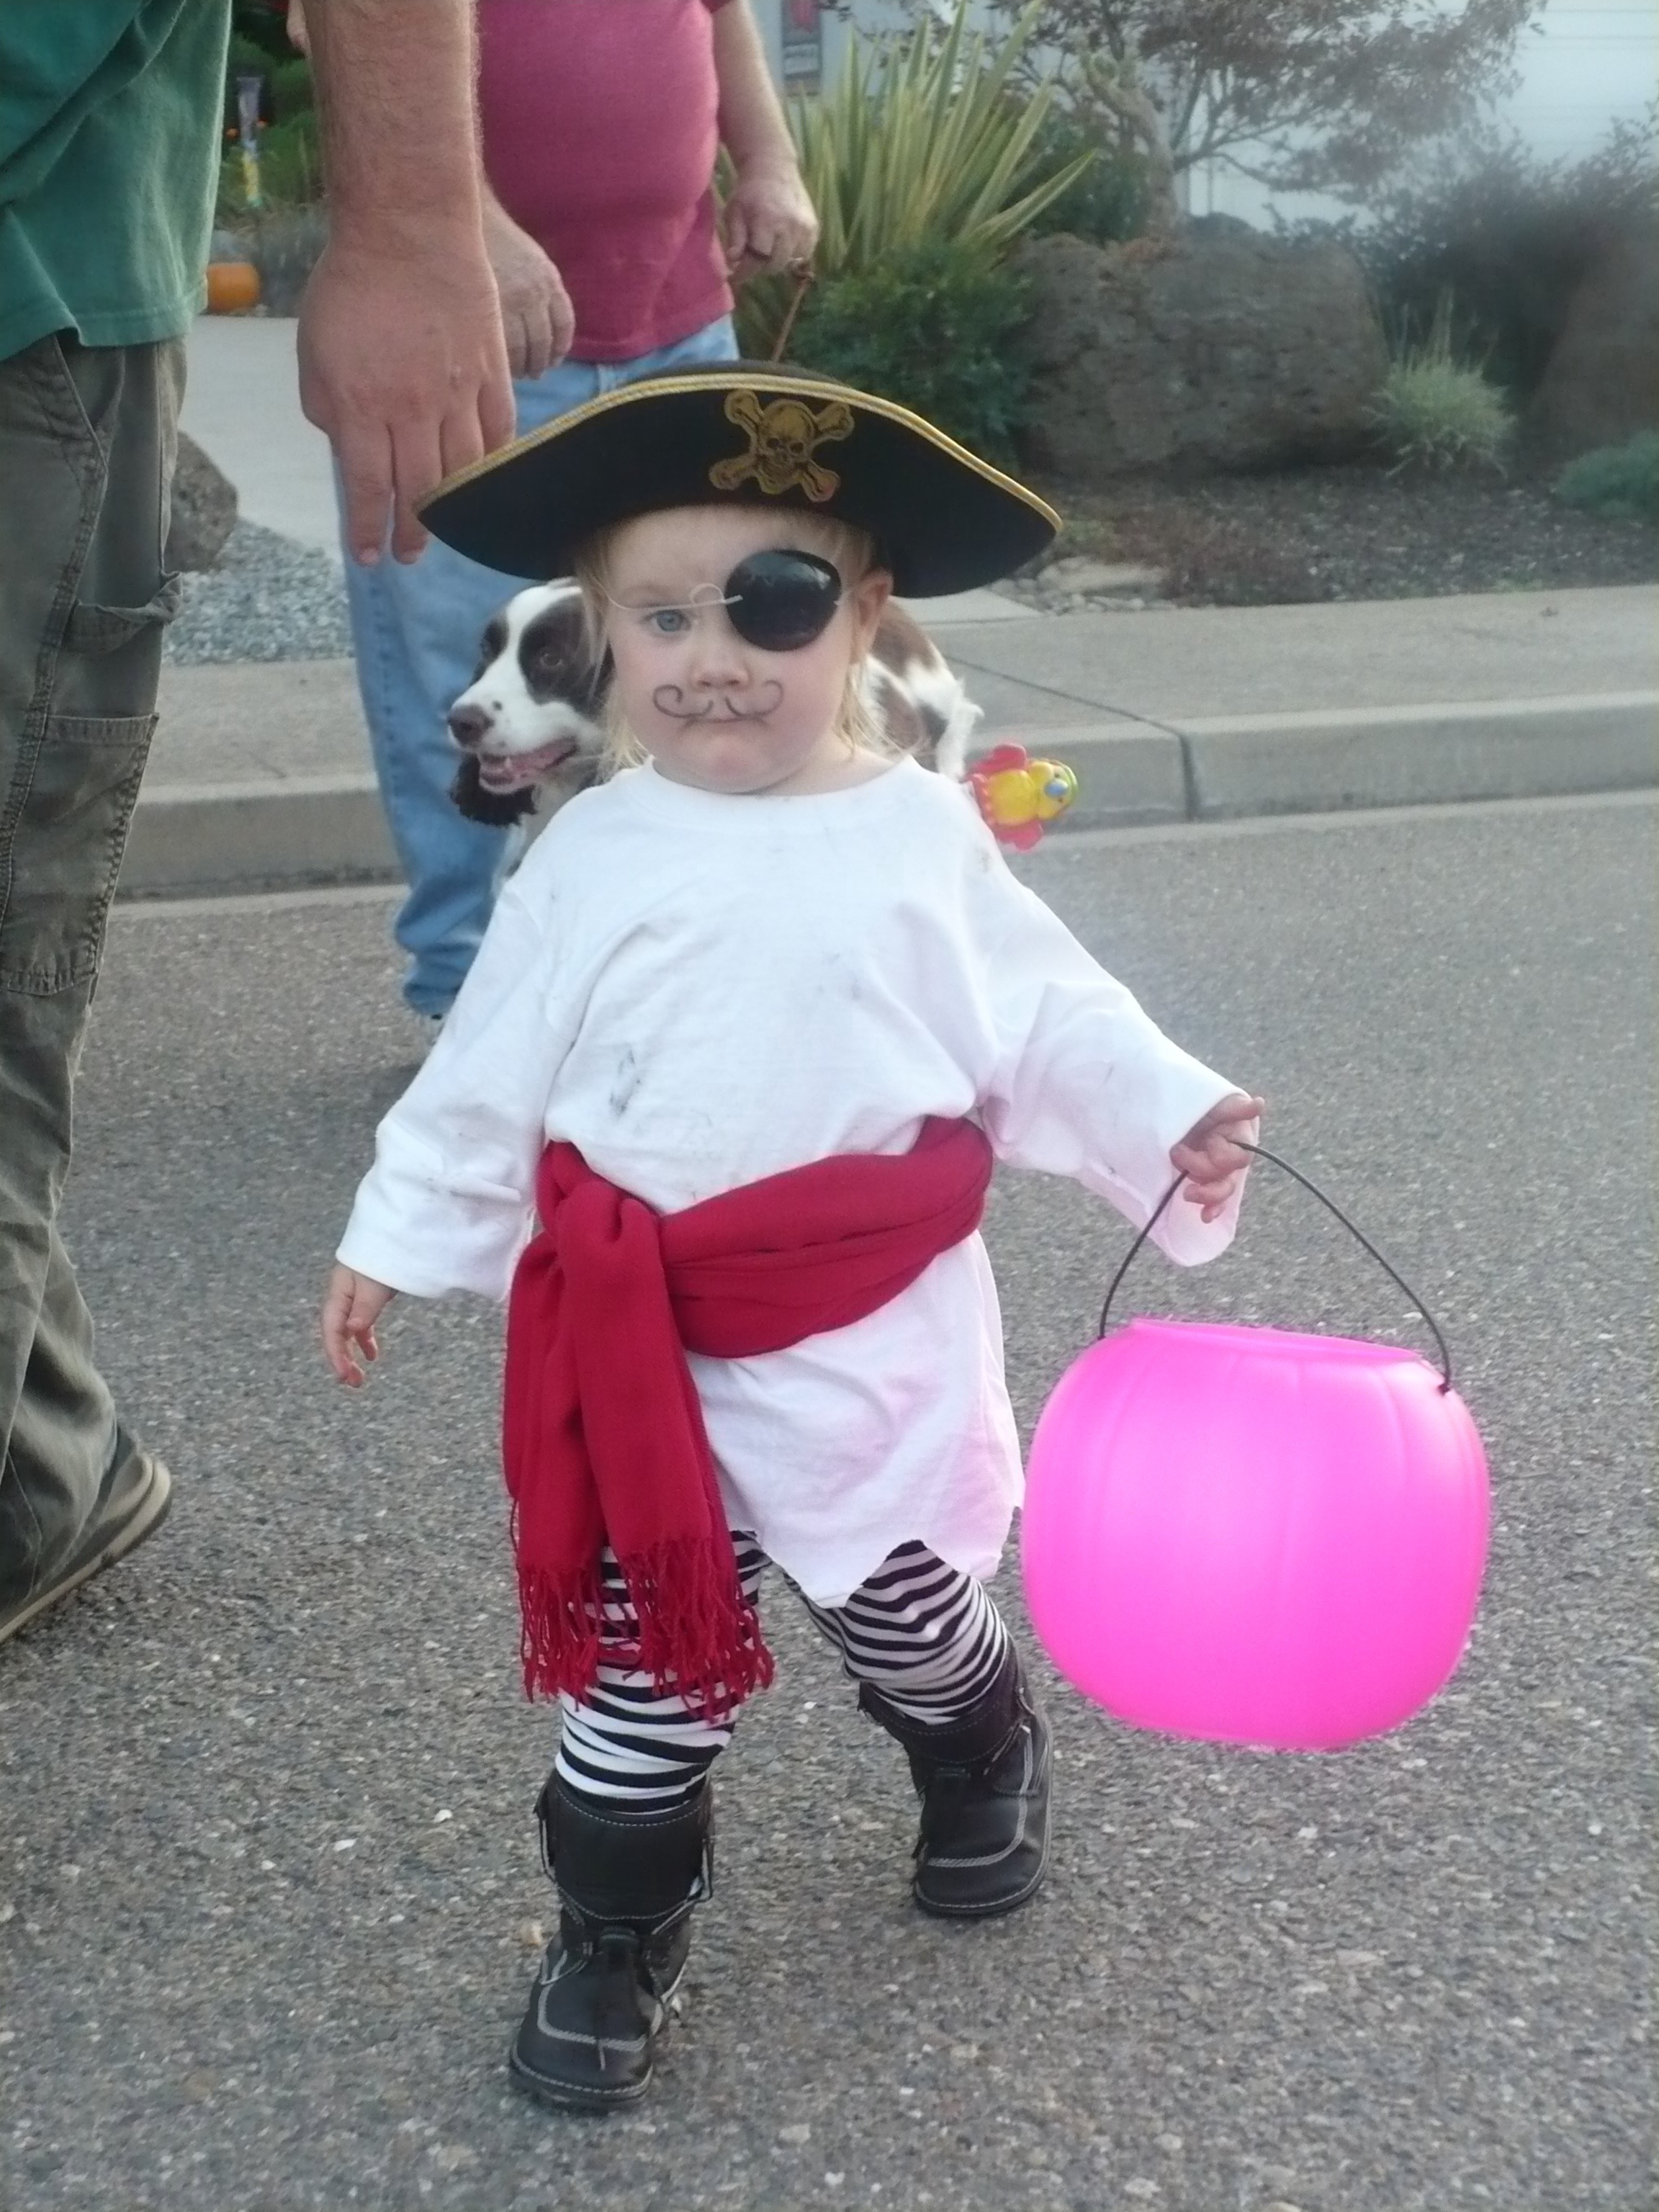 20111101-225733.jpg & pirate toddler | lazy to living